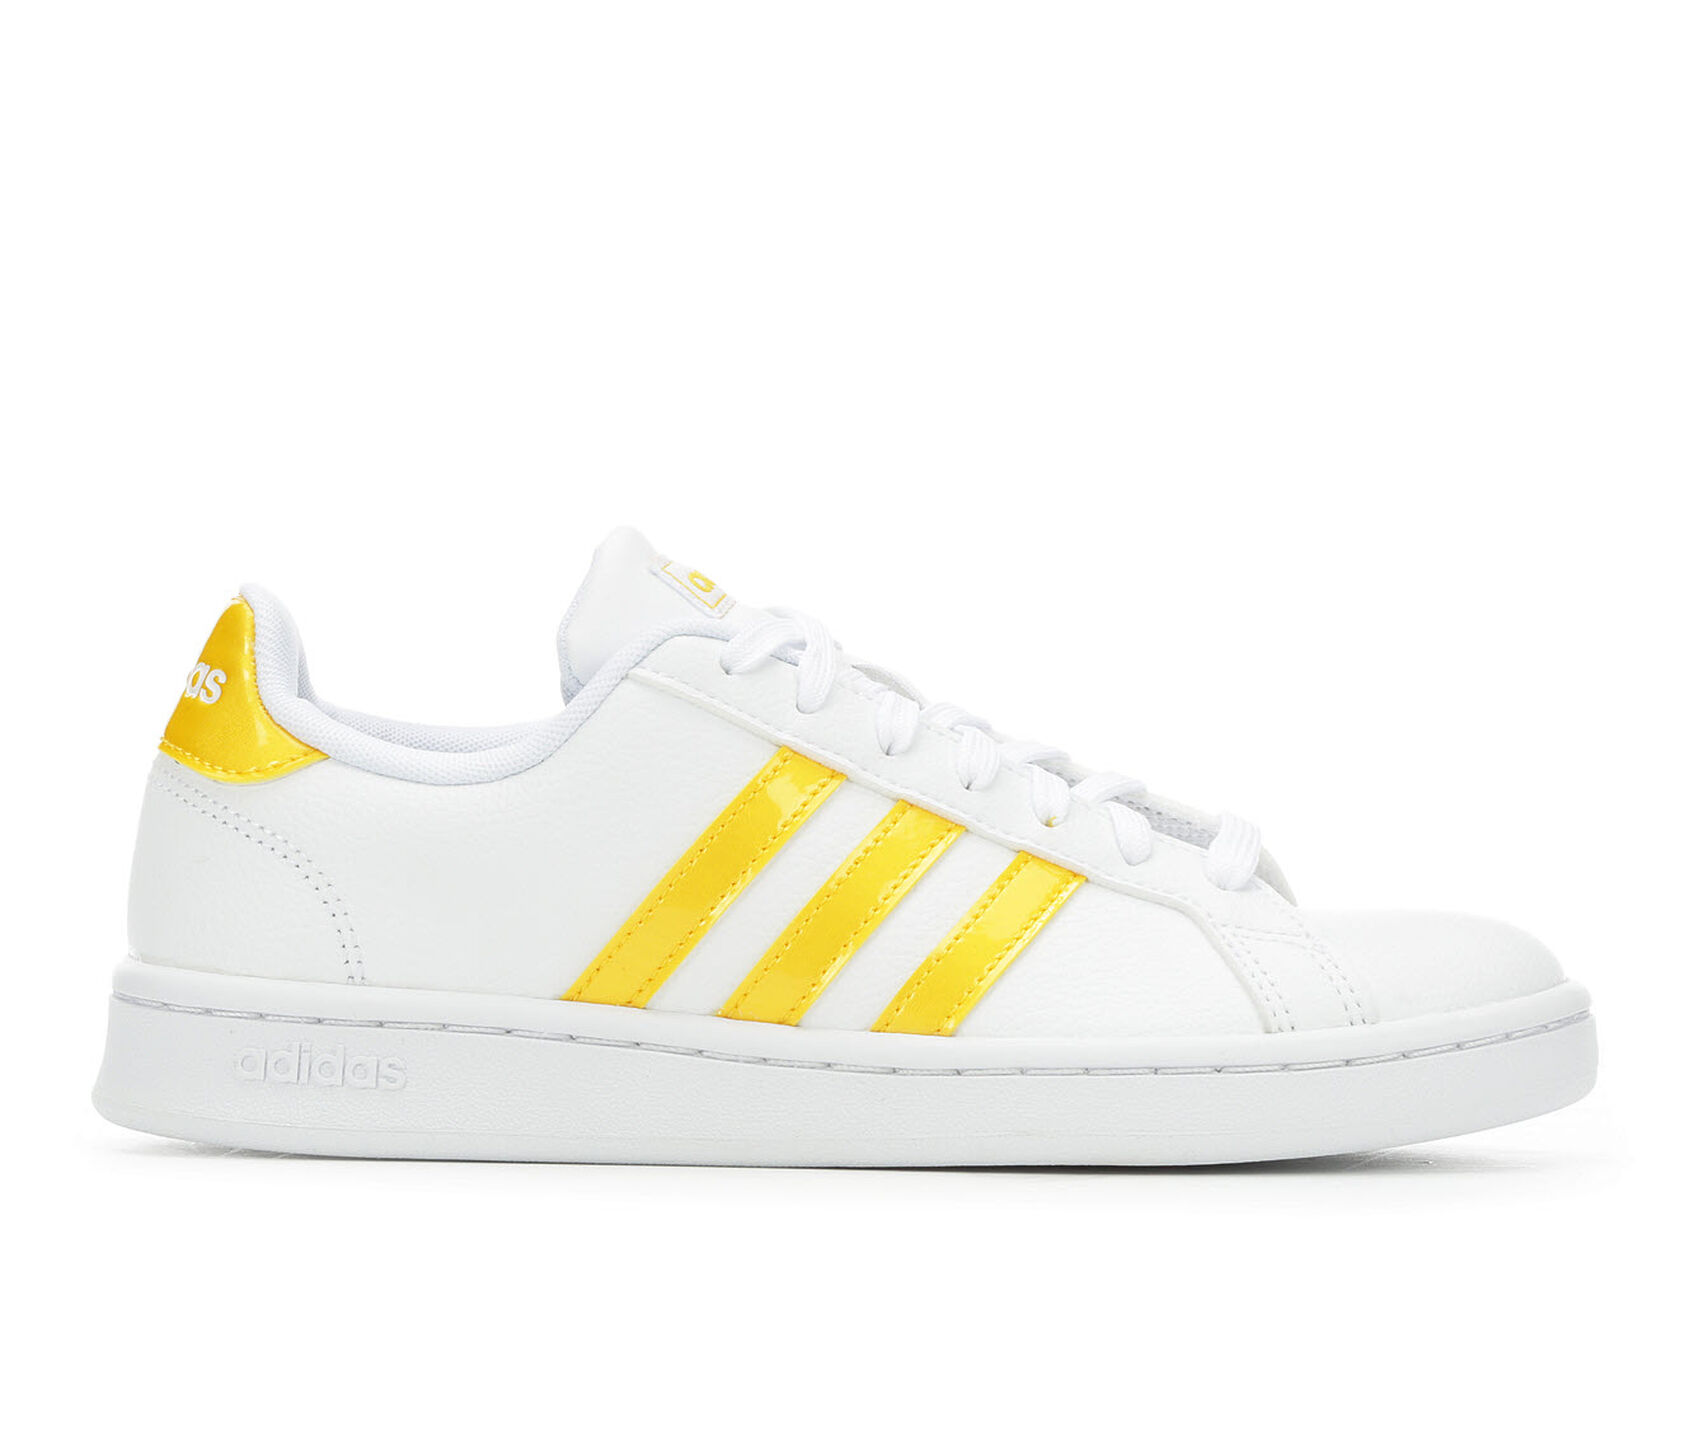 c09a37f9f ... Adidas Grand Court Basketball Shoes. Previous